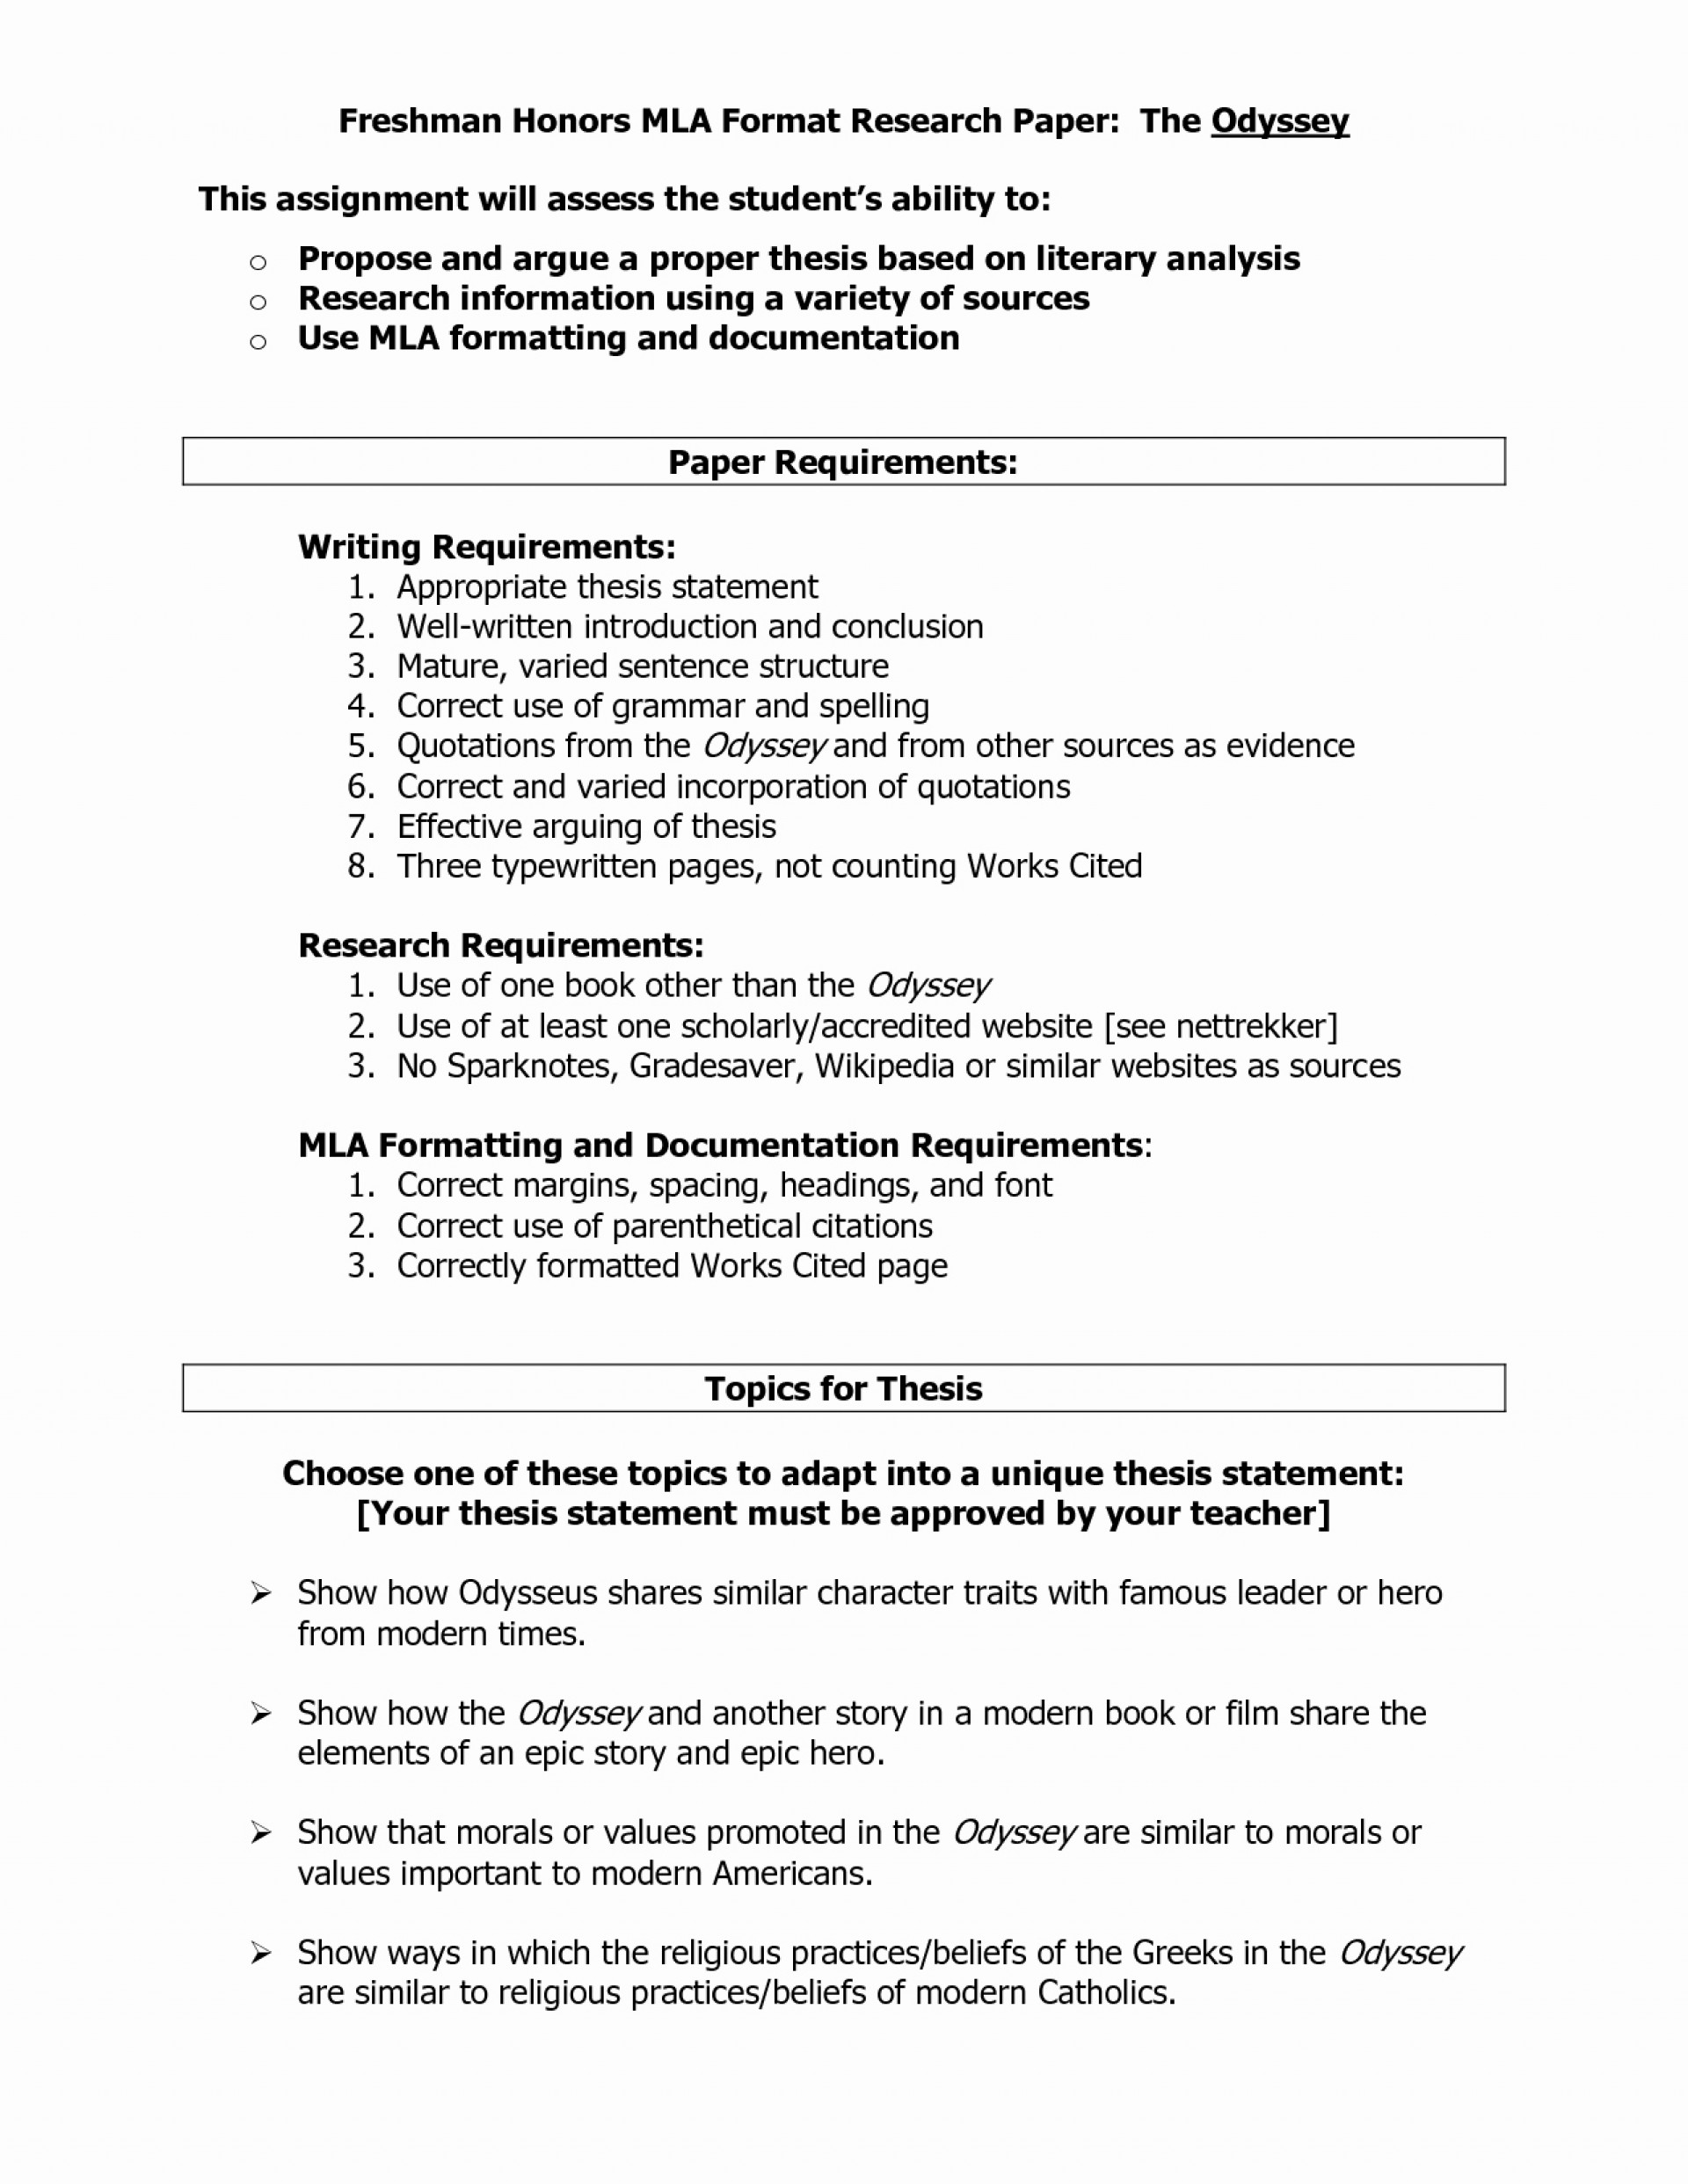 Ocr 21st century science biology coursework